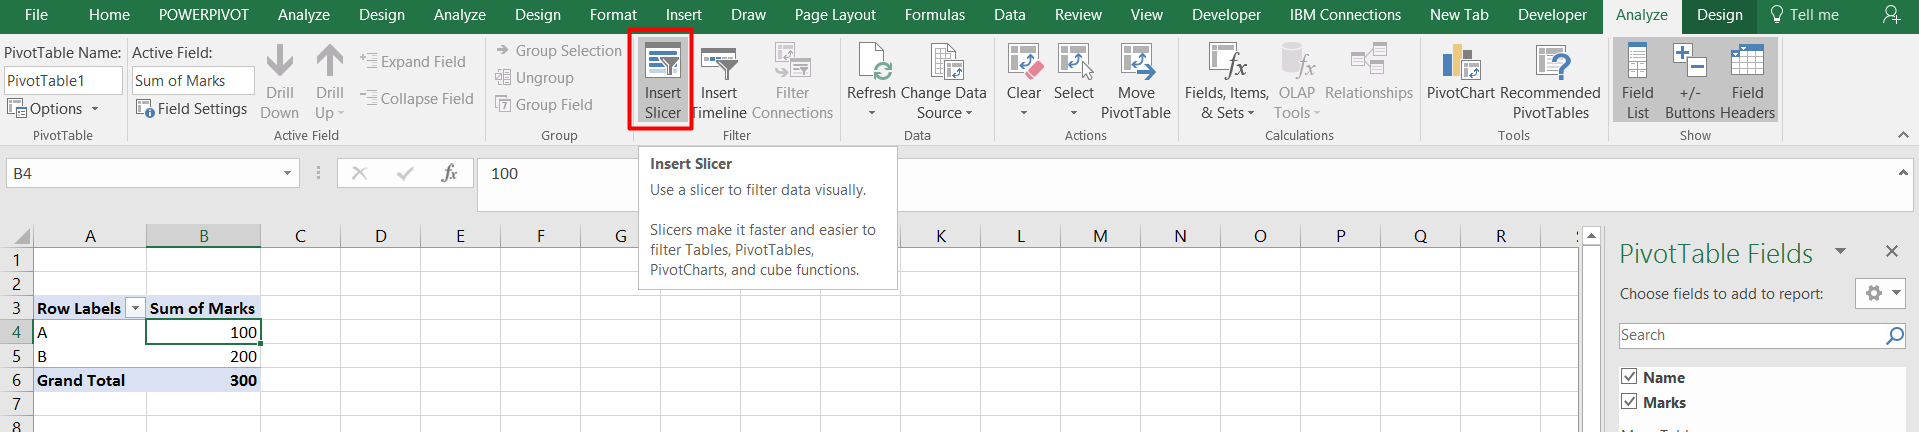 Excel Pivot Table Tips & Tricks - AbsentData